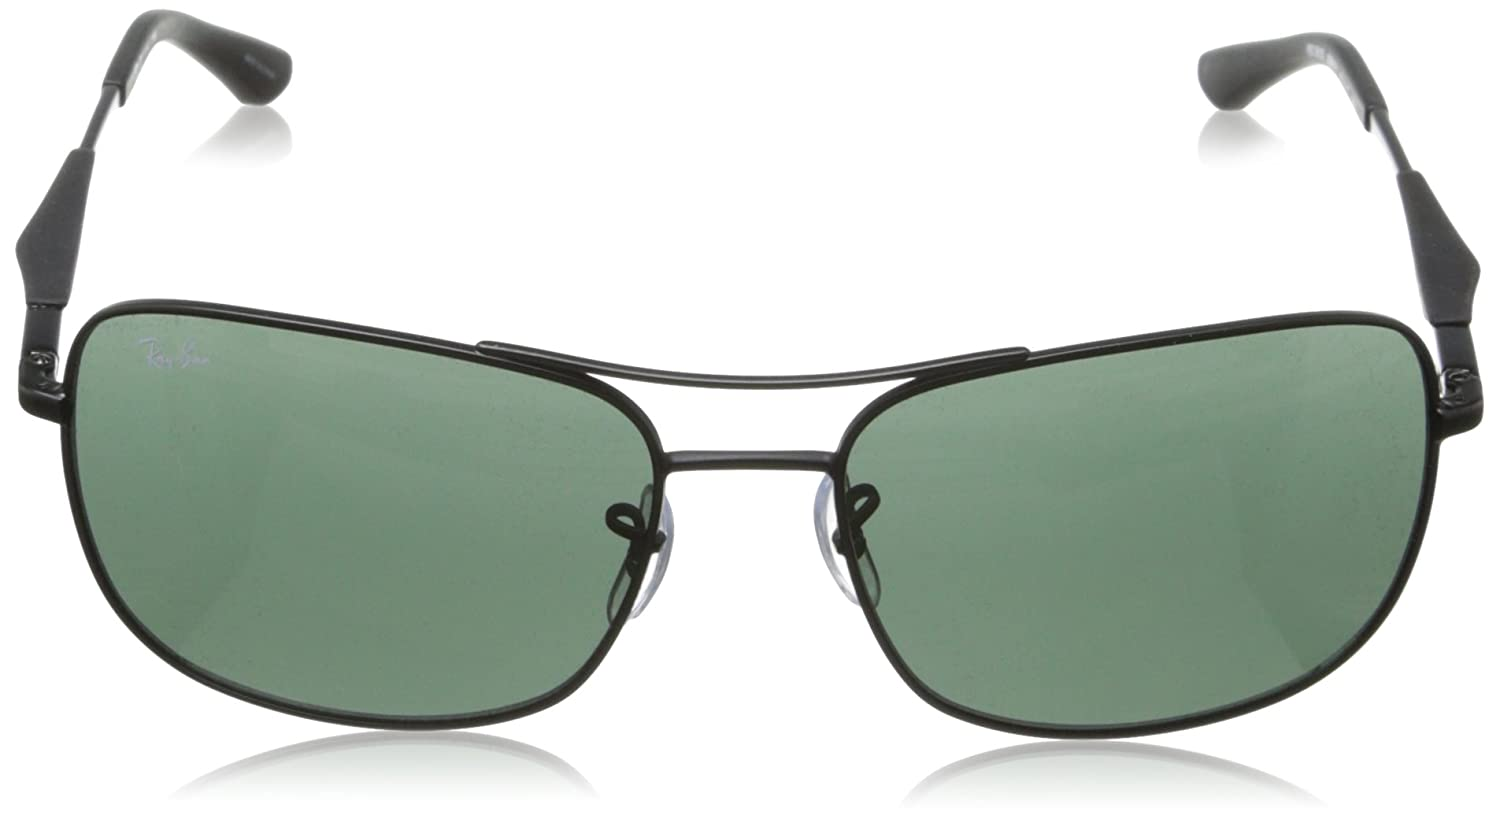 cd0d8ff8b8 Amazon.com  Ray-Ban RB3515 Sunglasses Matte Gunmetal Polarized Brown 61mm   Ray-Ban  Shoes